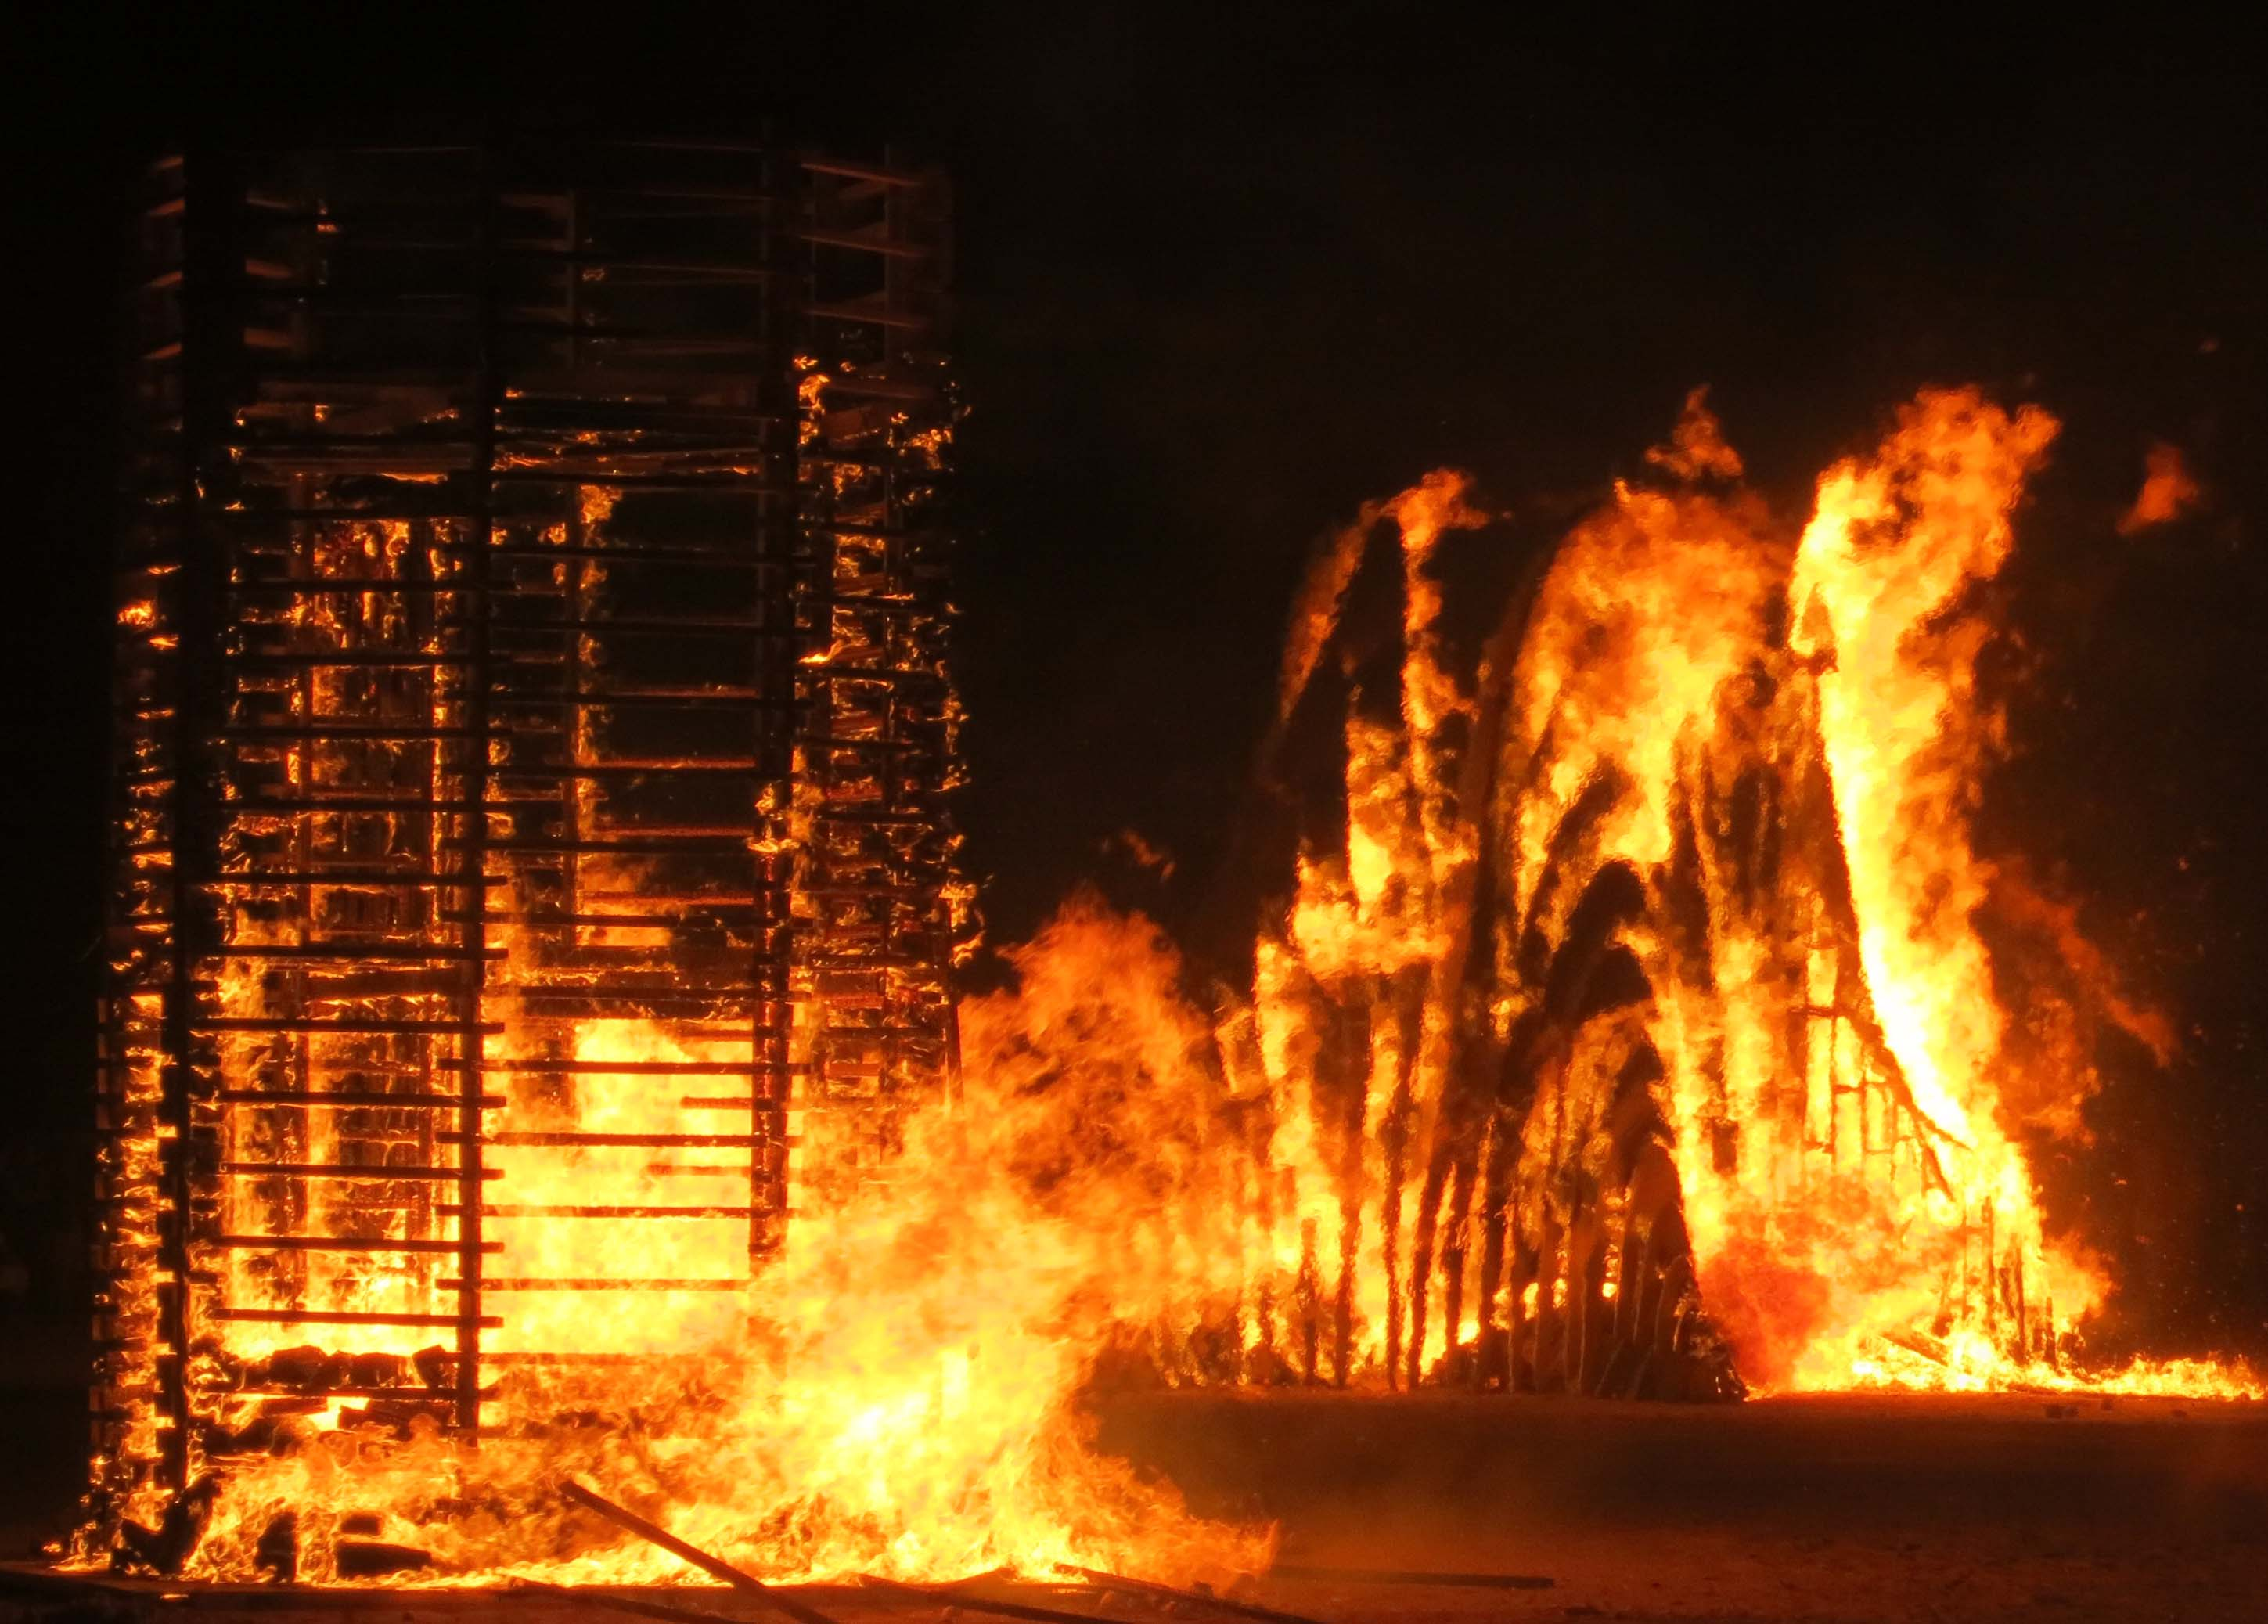 New York City's regional art burns at Burning Man 2013.